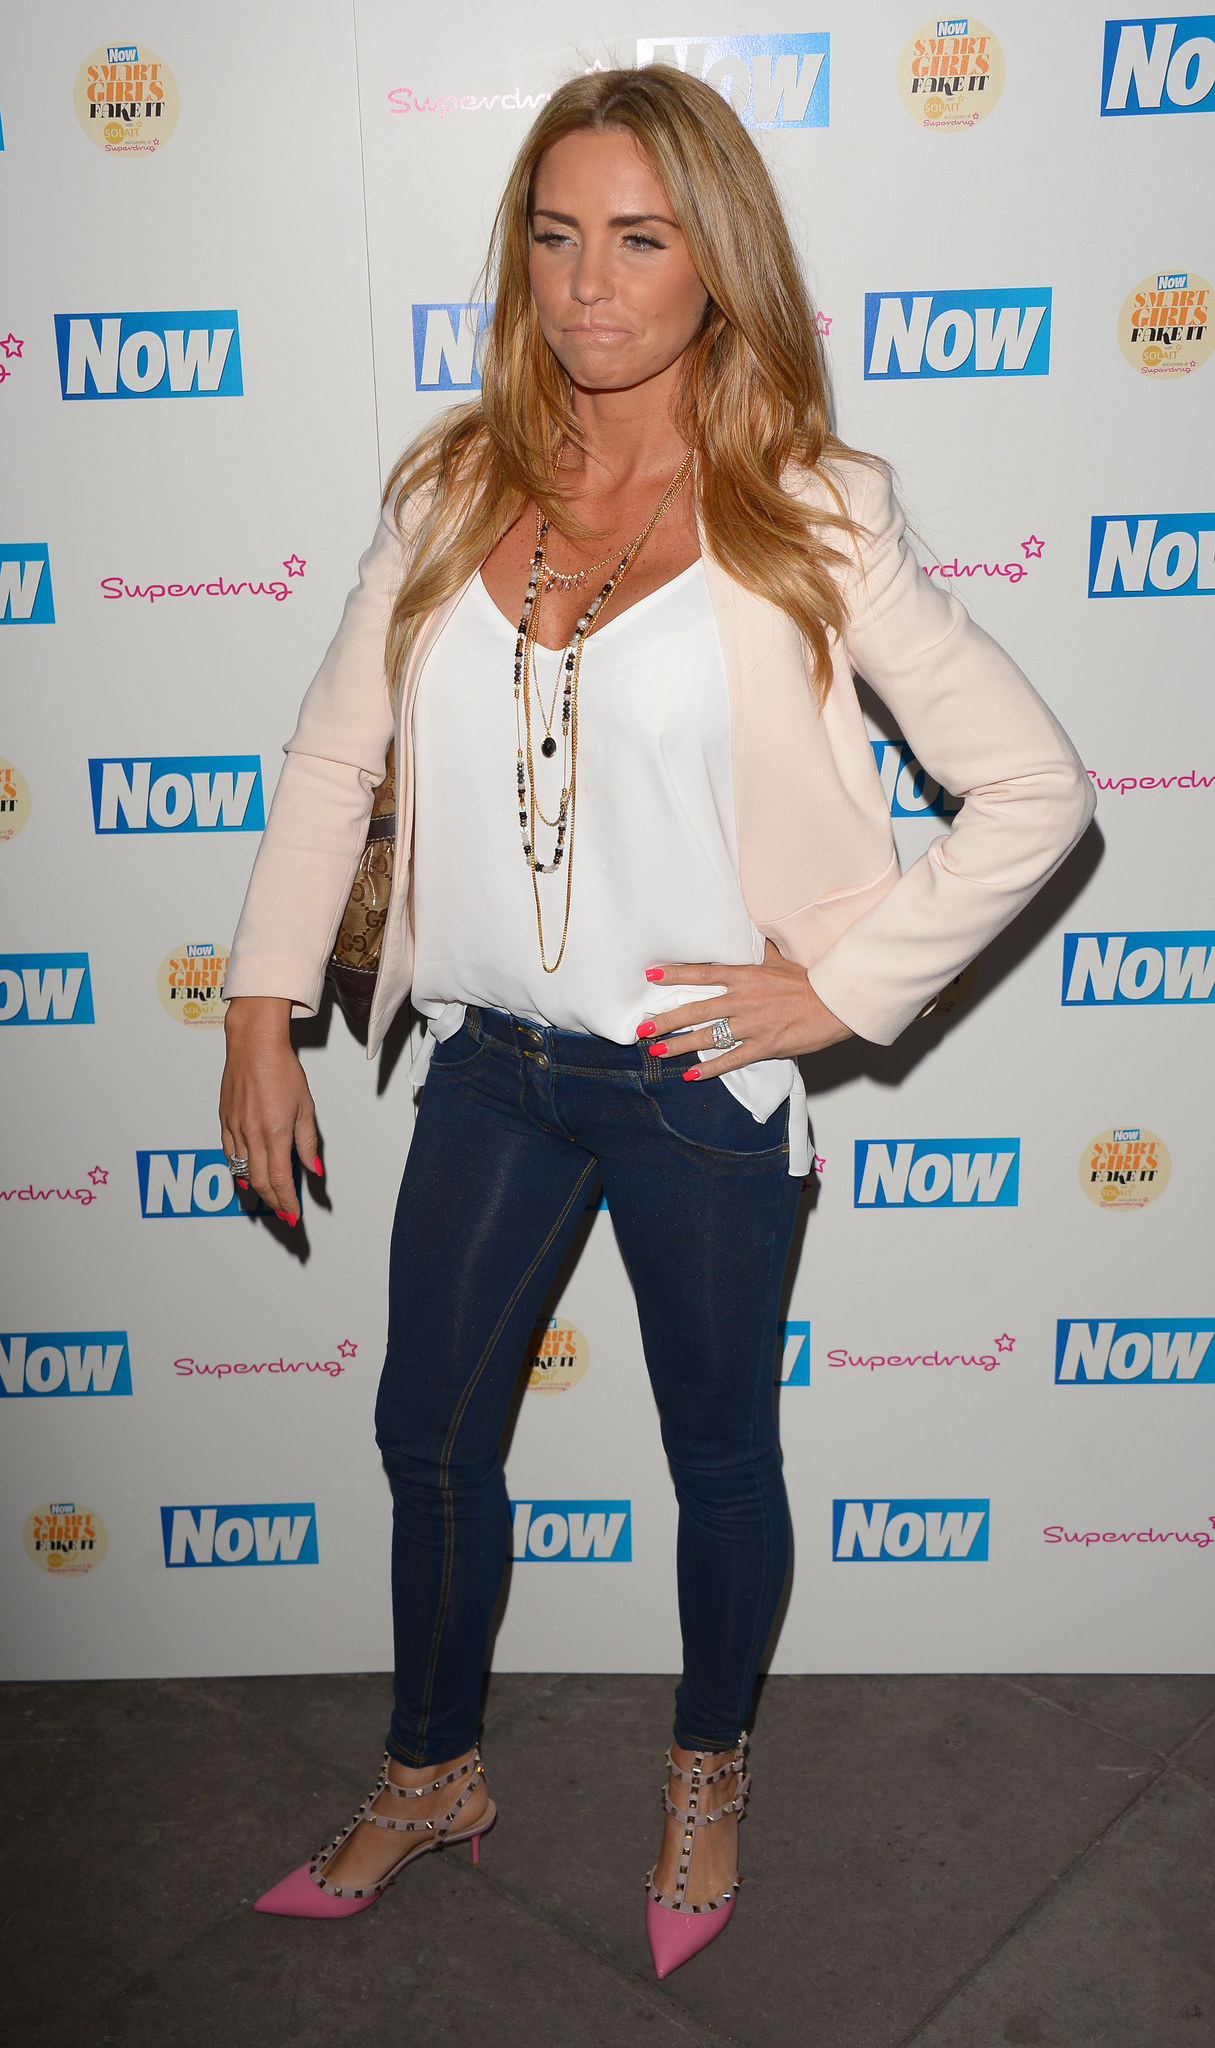 Katie Price Now Smart Girls Fake It Campaign Launch in London